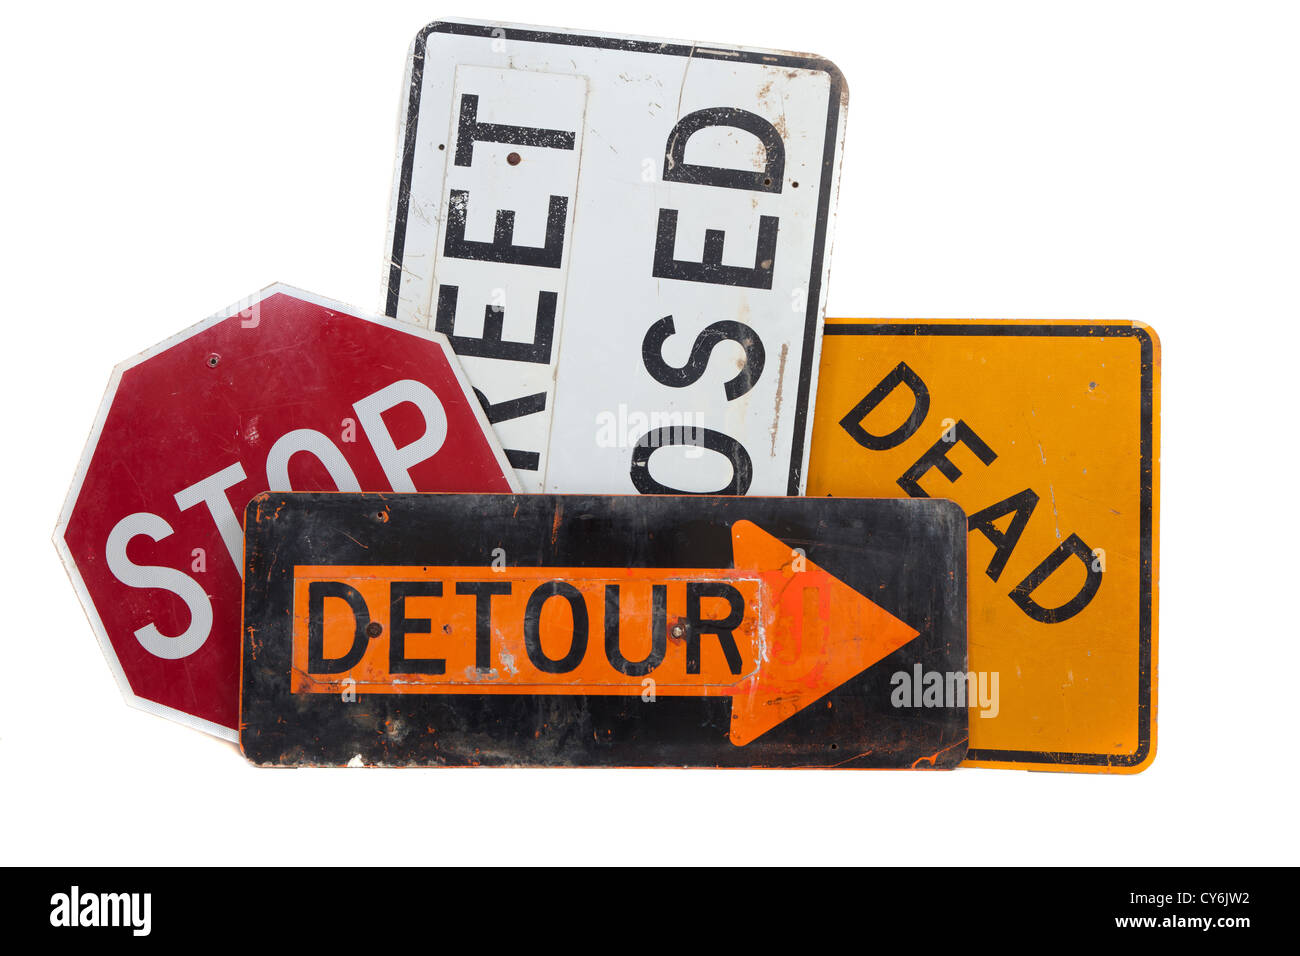 Assorted Road signs including dead end, stop, detour and street closed on a white background - Stock Image